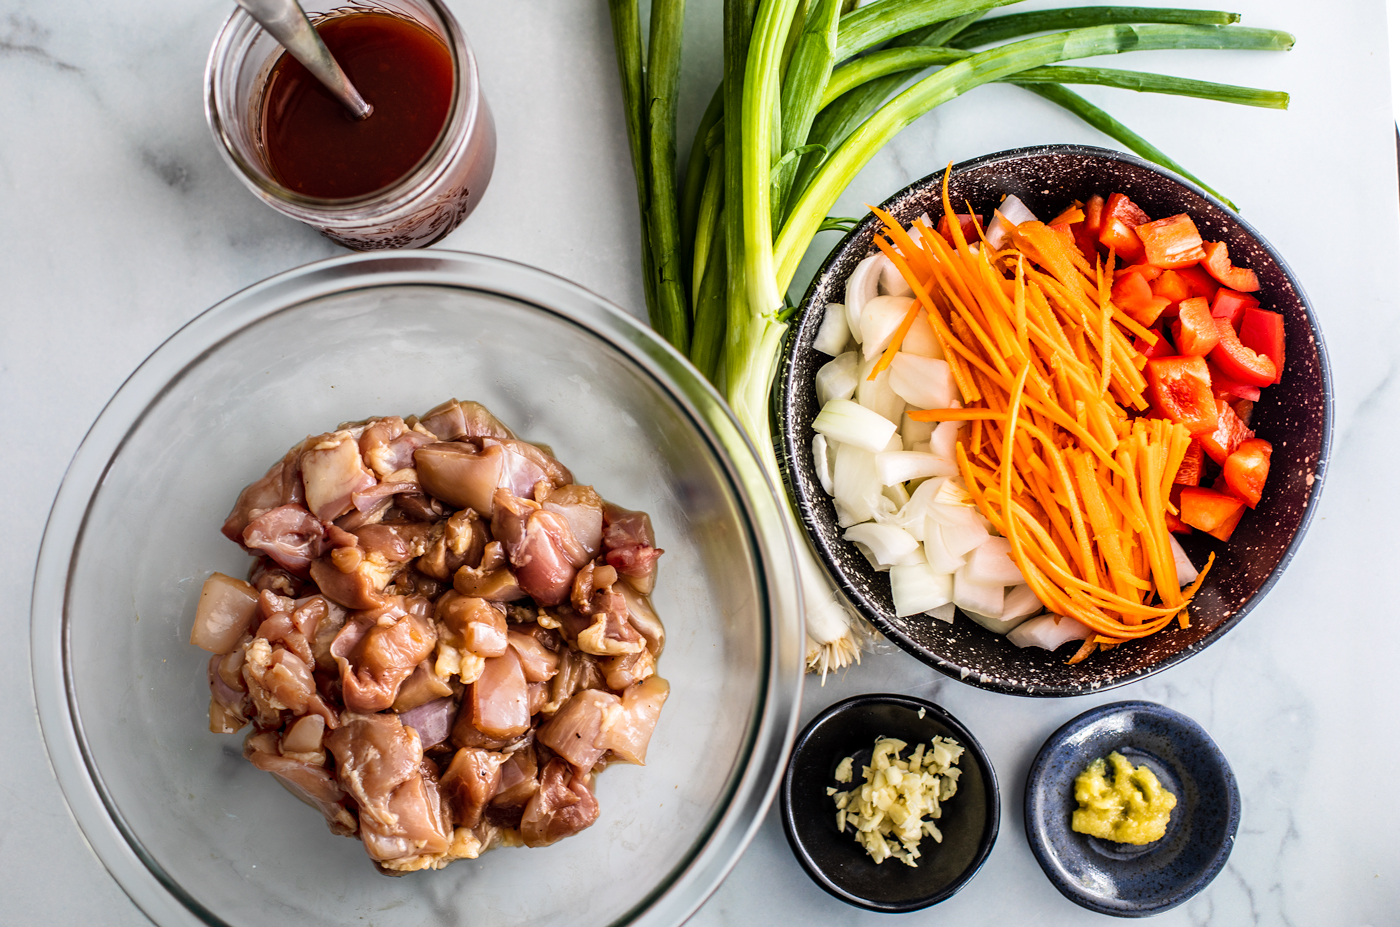 Bowl of marinated chicken, jar of sweet and sour sauce, bowl of vegetables, garlic, ginger, and scallions.